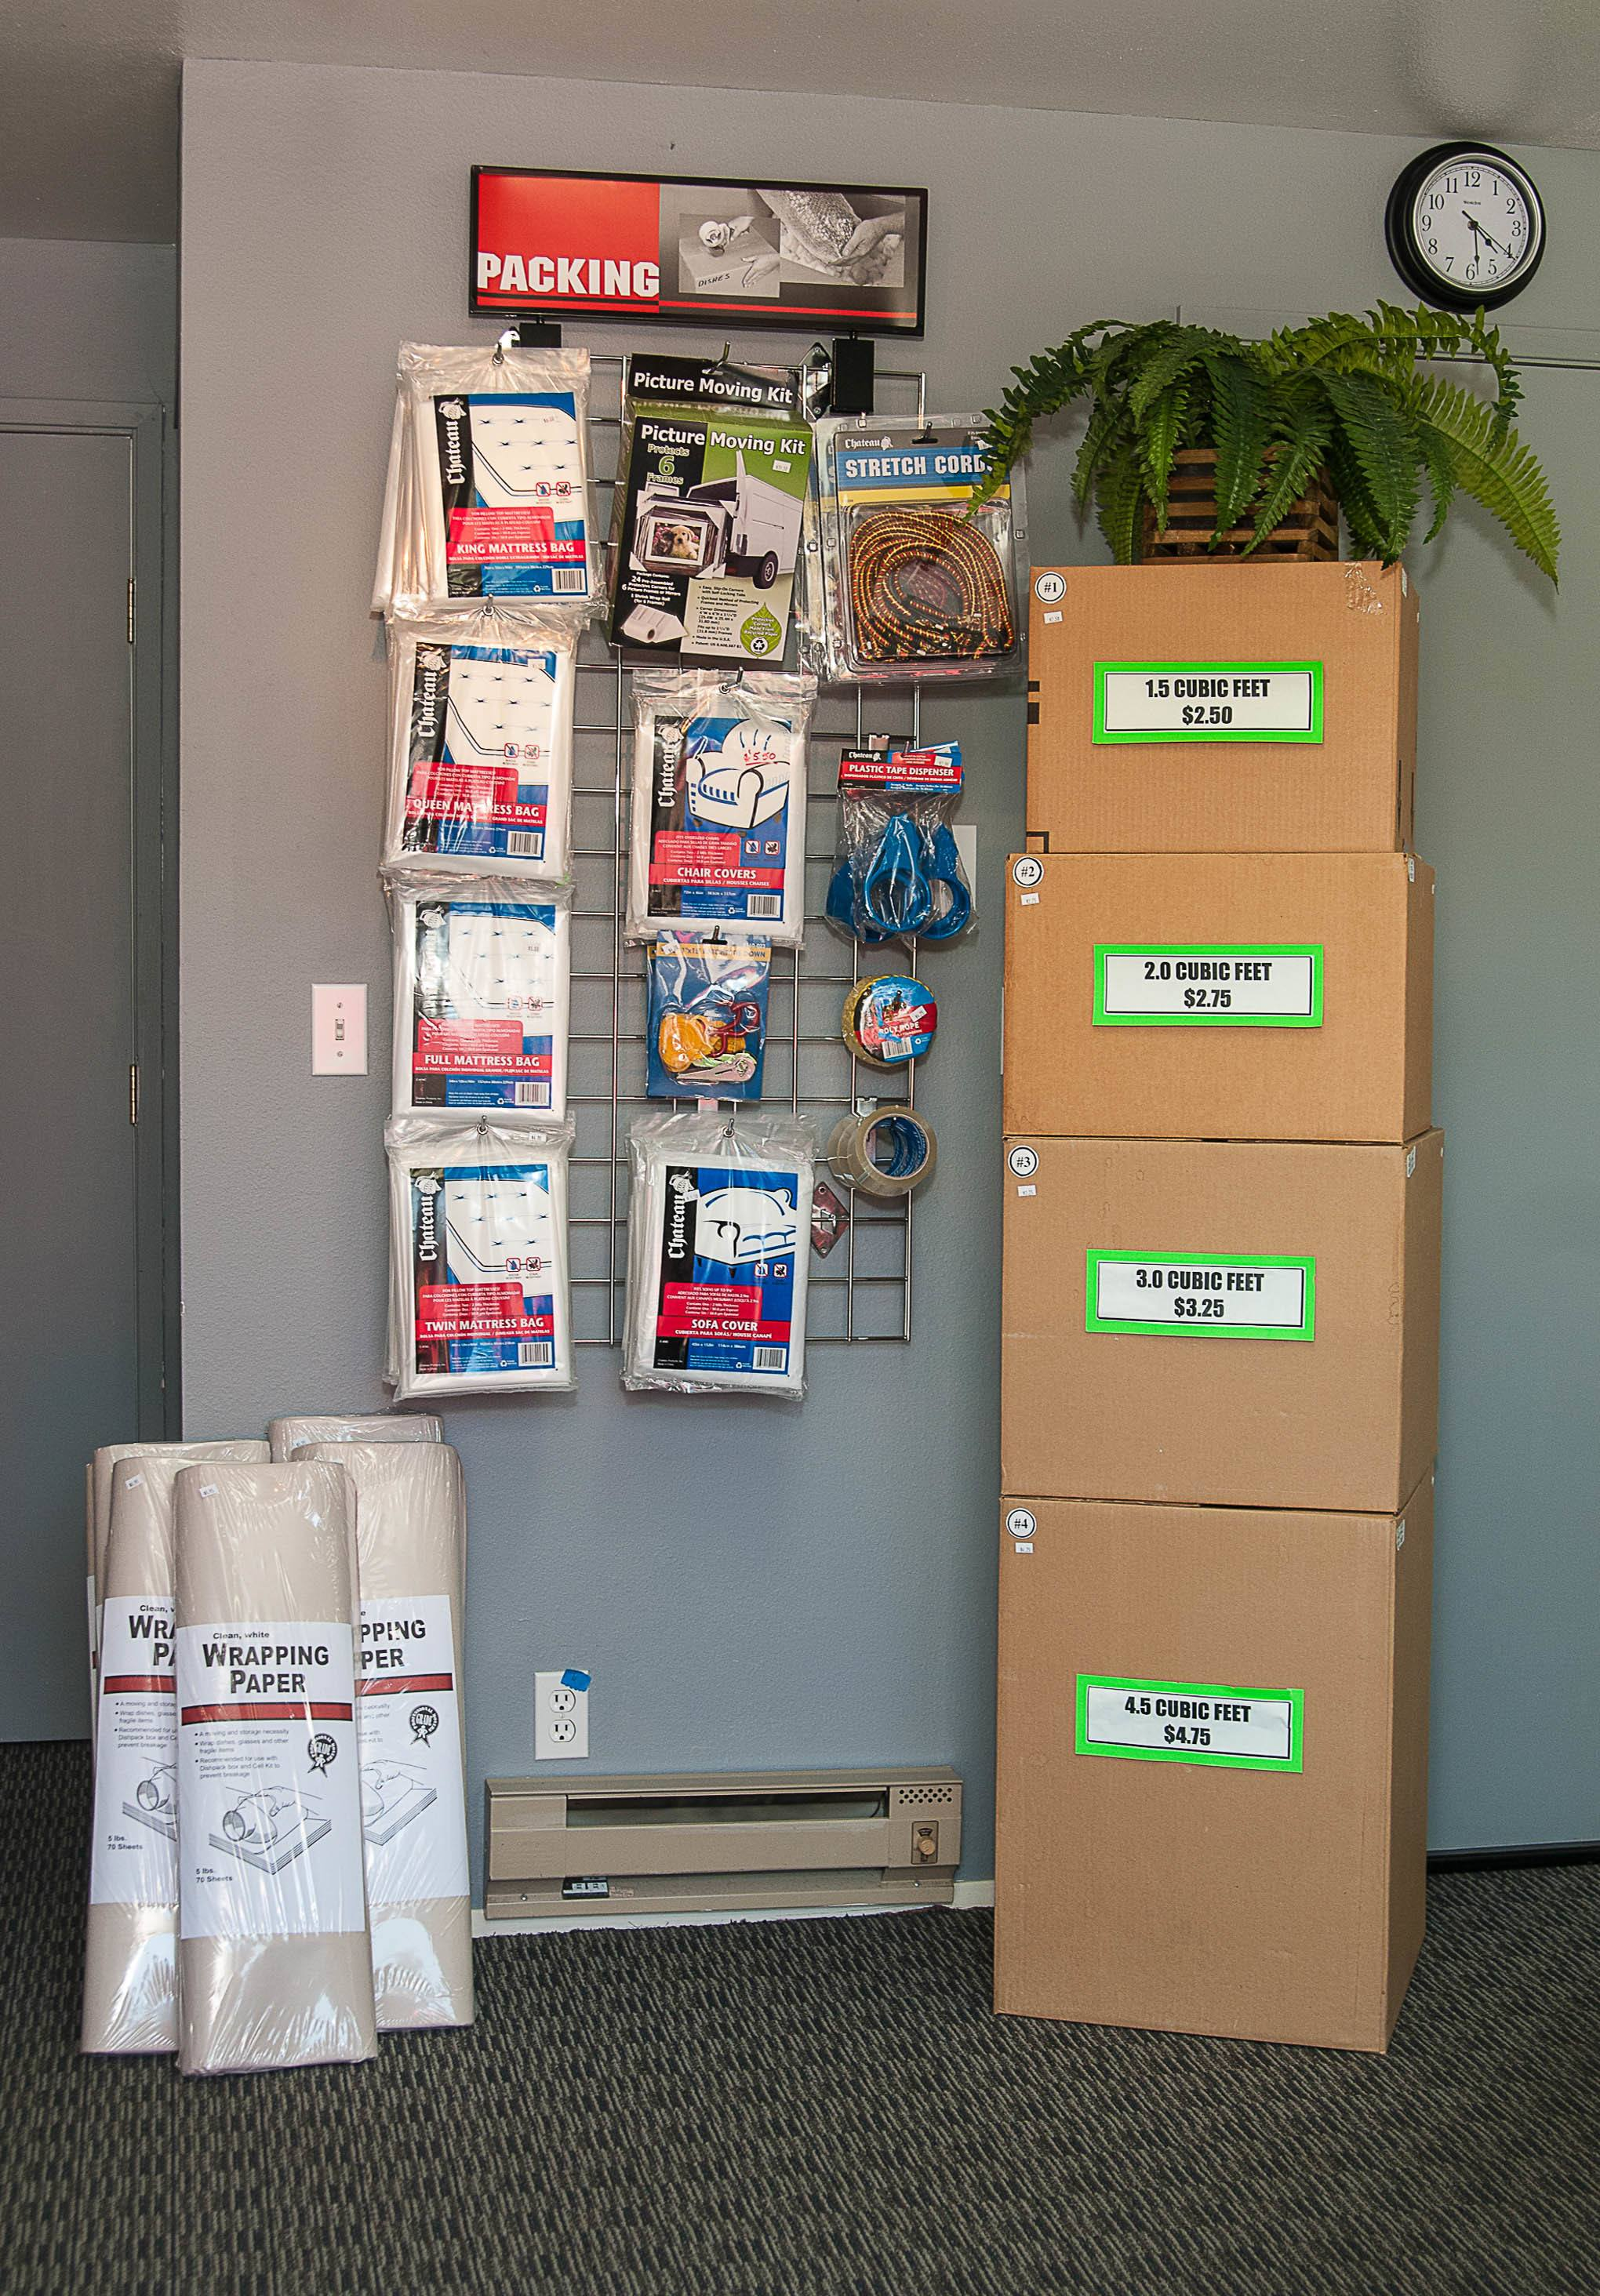 Packing supplies here at Reliable Storage